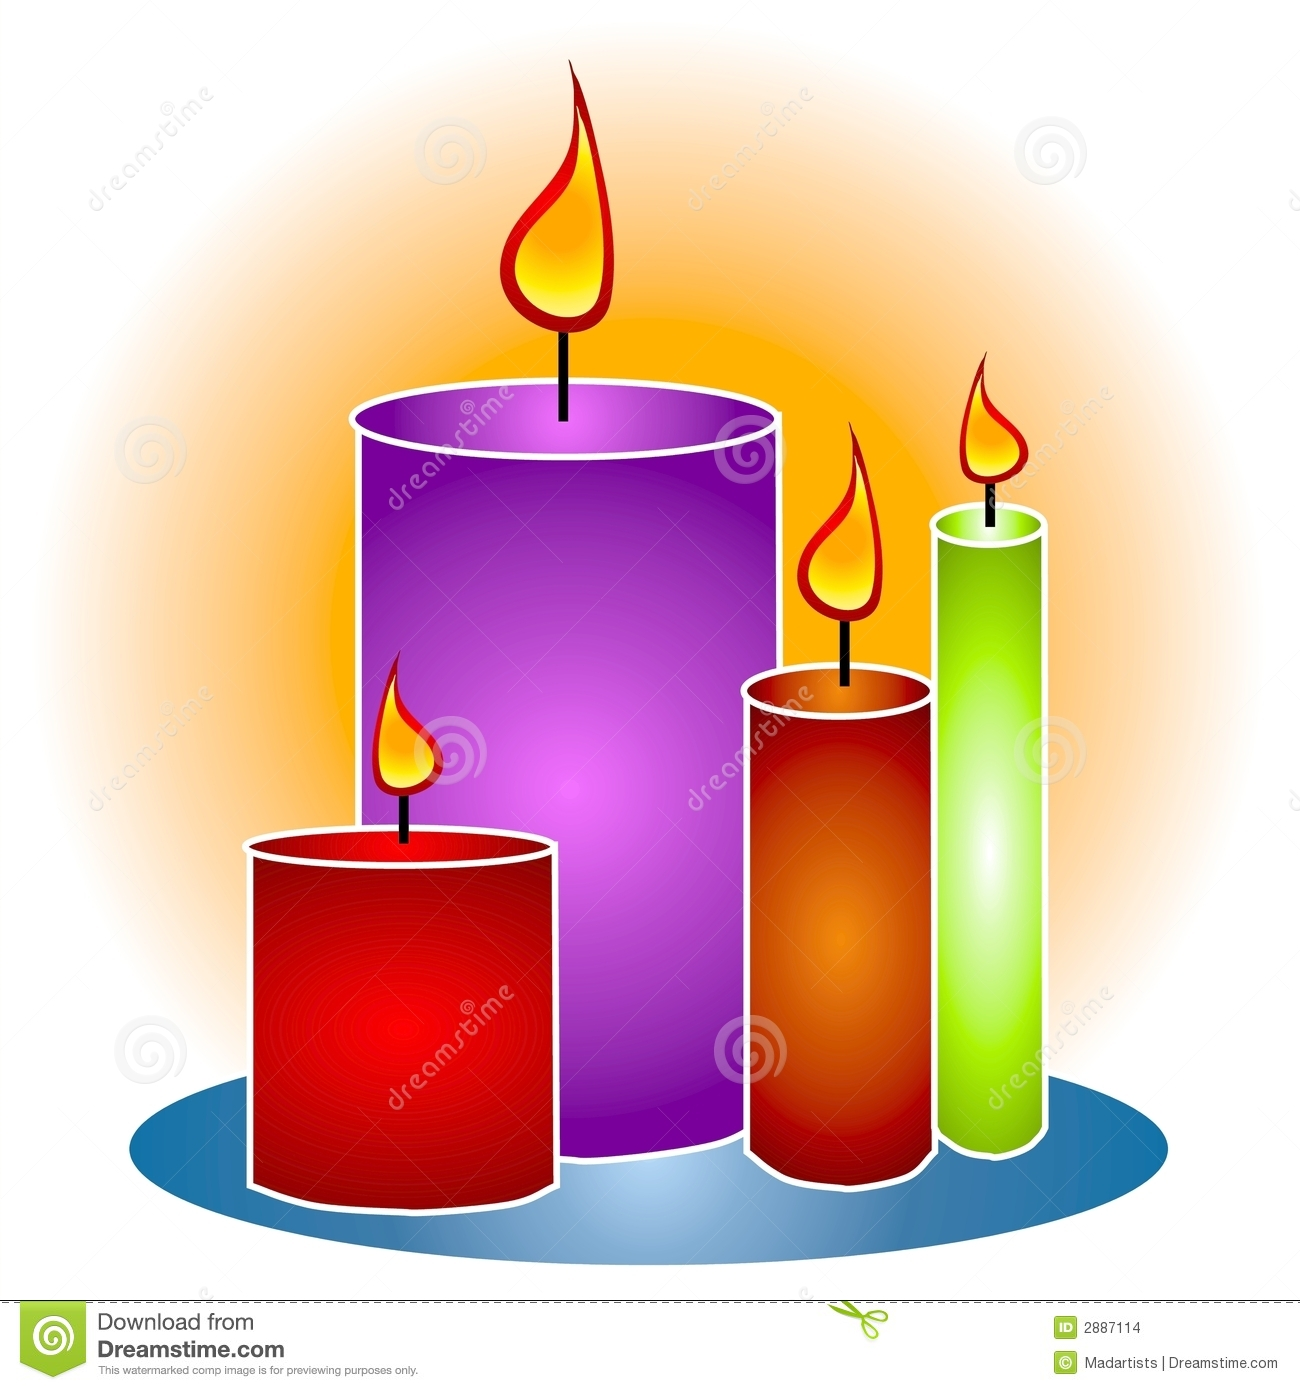 candle flame image clipart panda free clipart images rh clipartpanda com clip art candle images clip art candle burning both ends